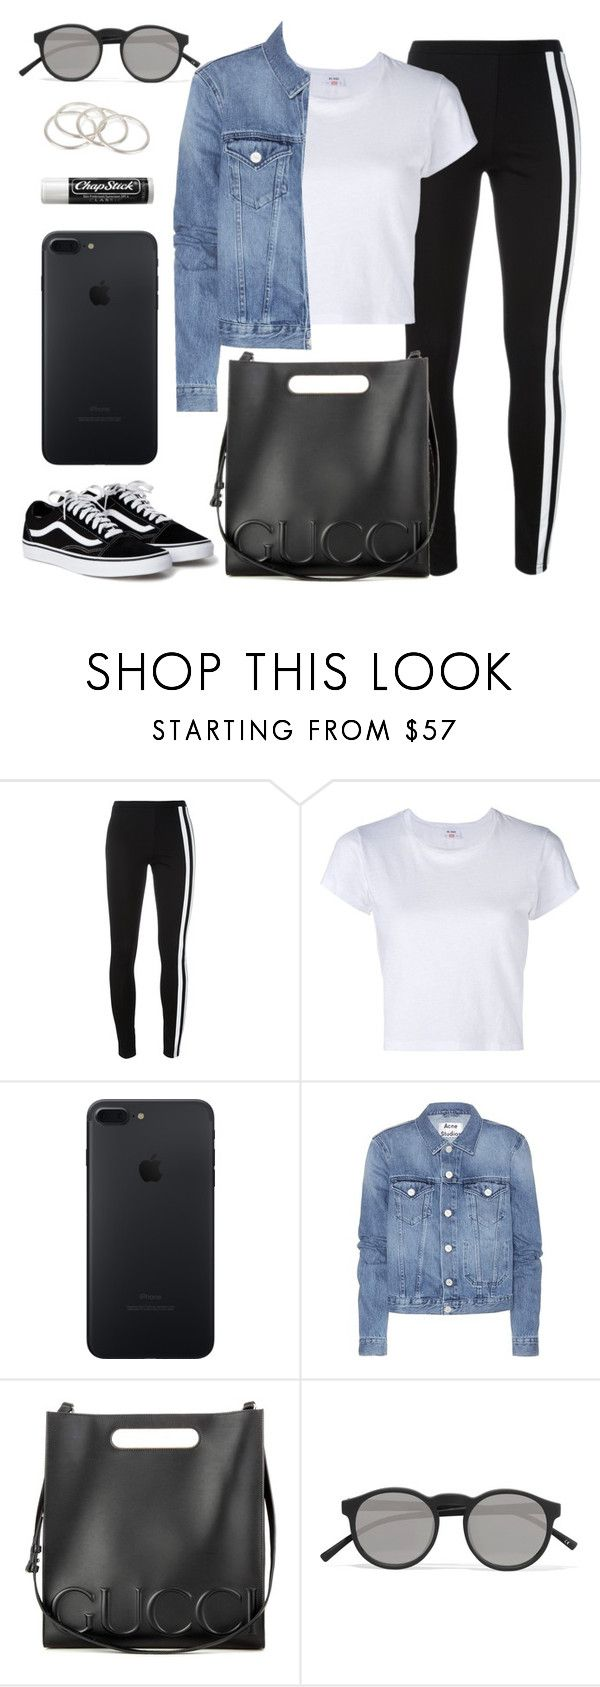 """""""#201"""" by anadaily ❤ liked on Polyvore featuring Y-3, RE/DONE, Acne Studios, Gucci, Le Specs, Chapstick and Vanessa Mooney"""